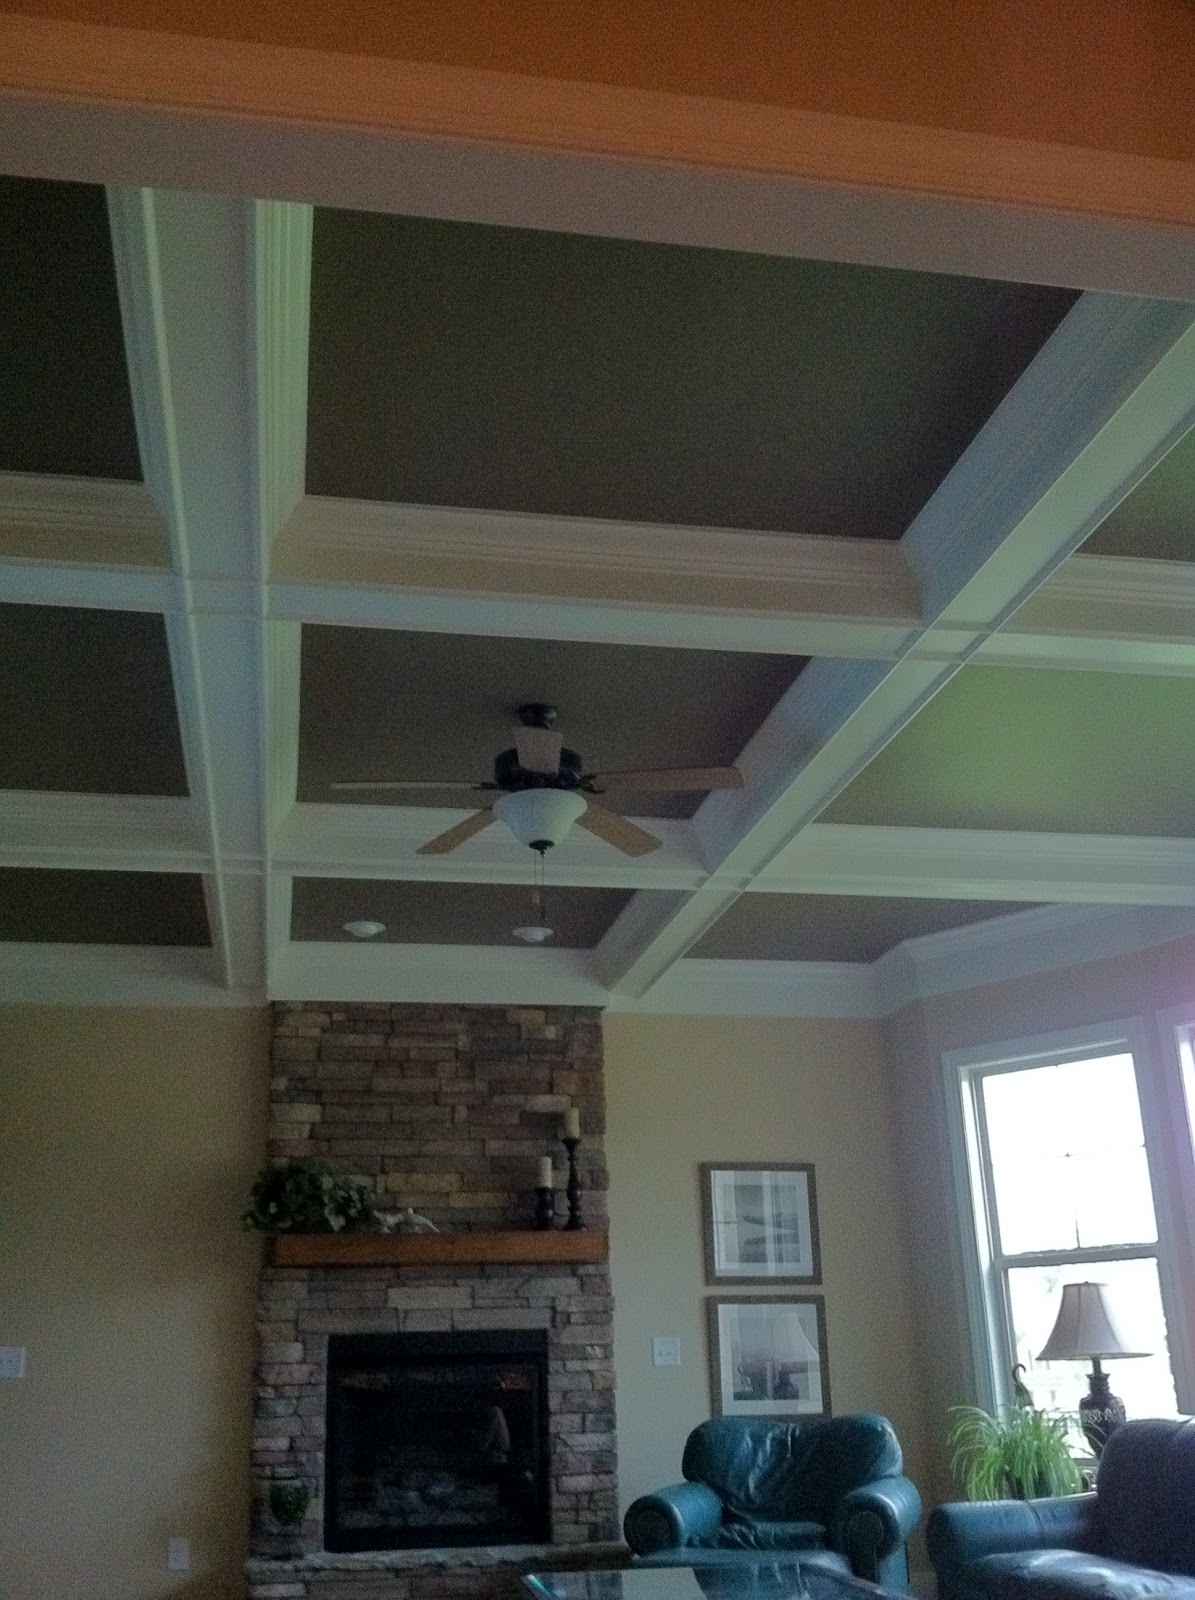 Carol Beck Interiors: Coffered Ceilings...Design On The Ceiling